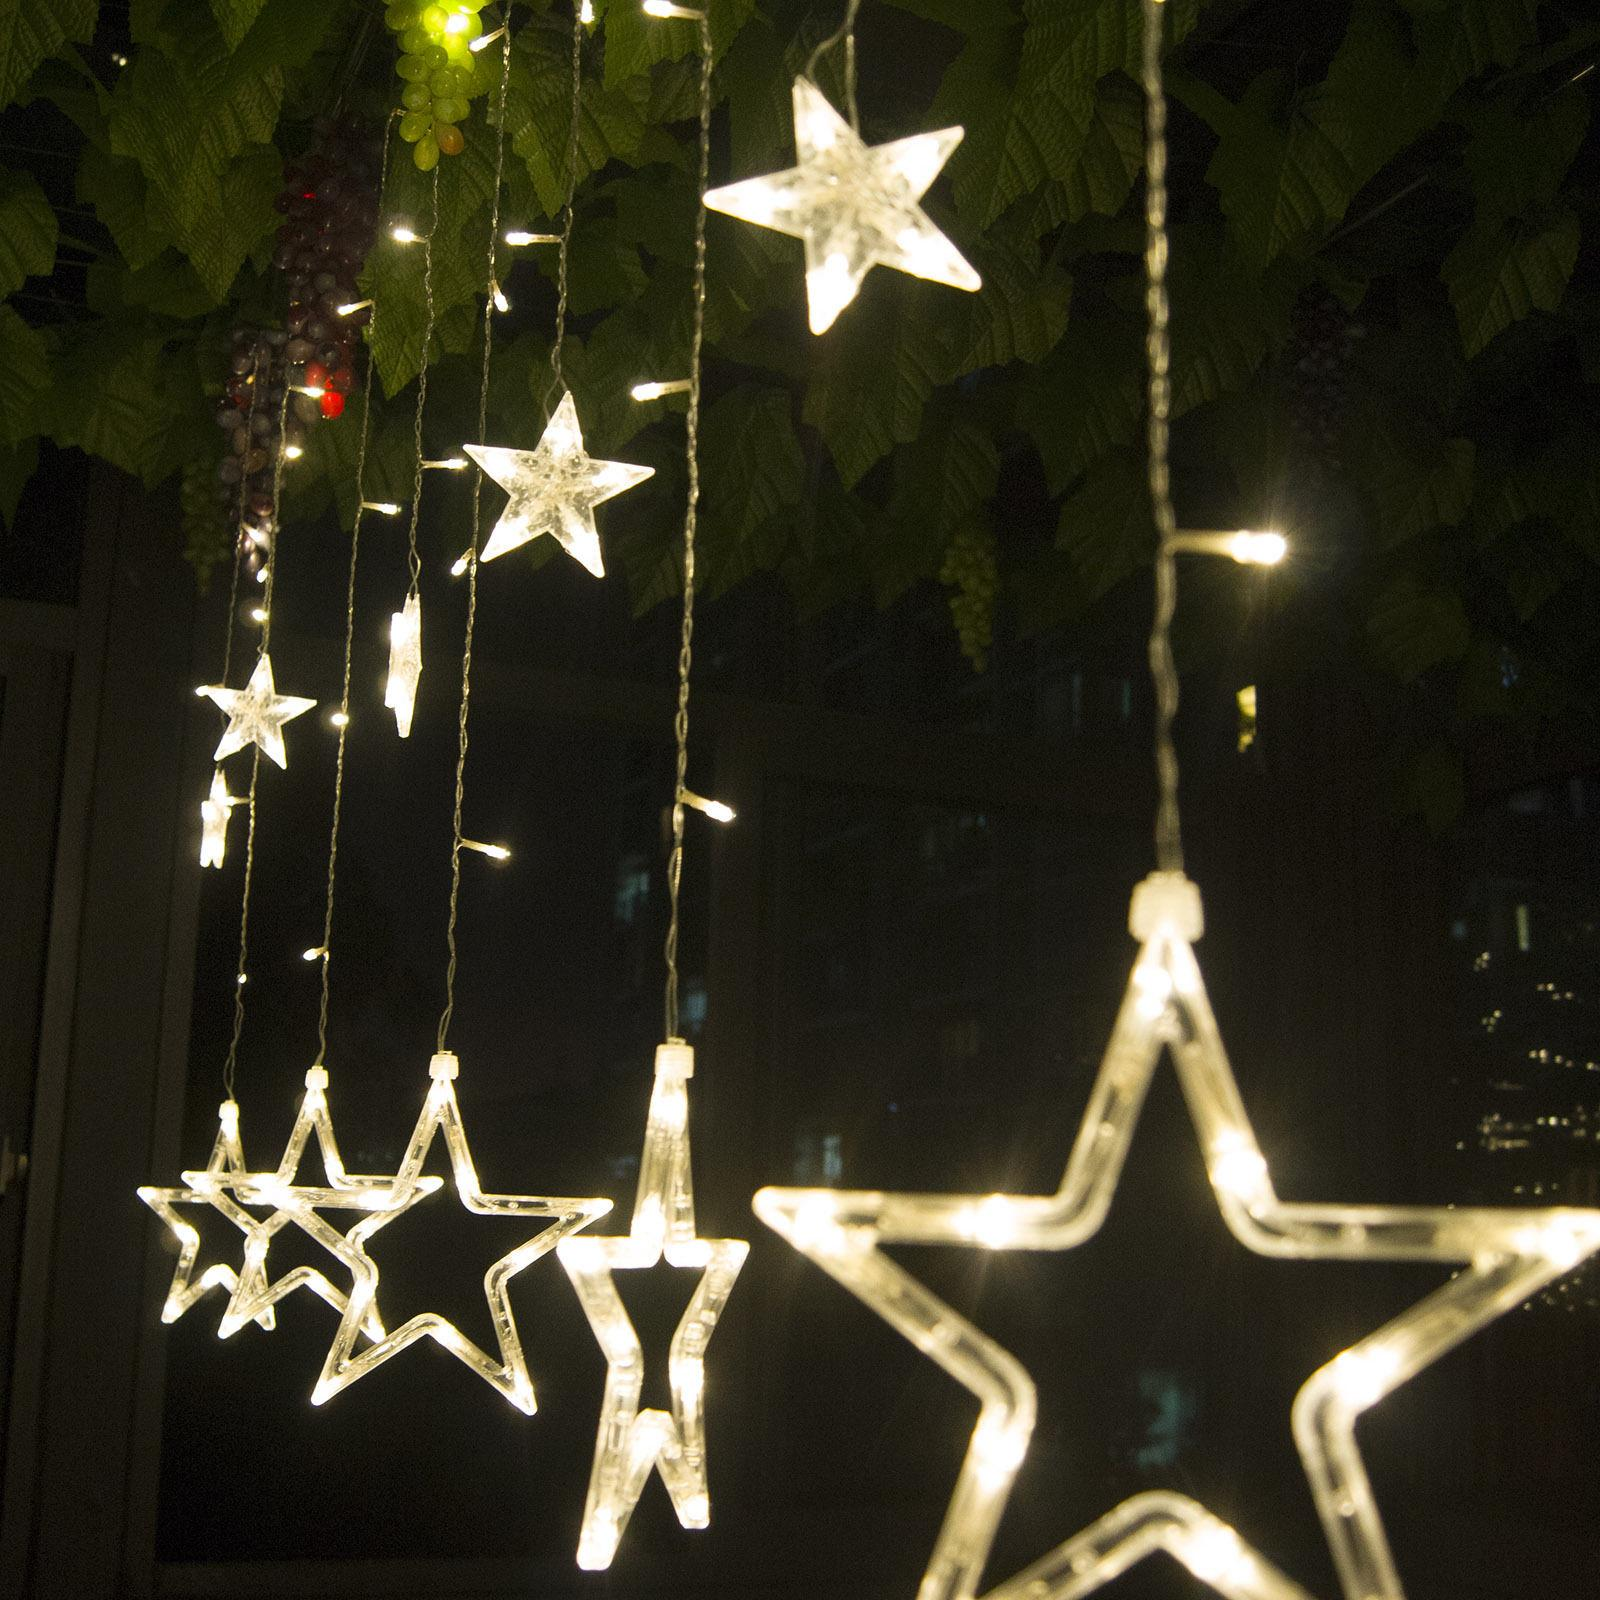 25m 168 led curtain star string fairy christmas lights lighting white strings for xmas wedding birthday romantic party string lights outdoor string lights